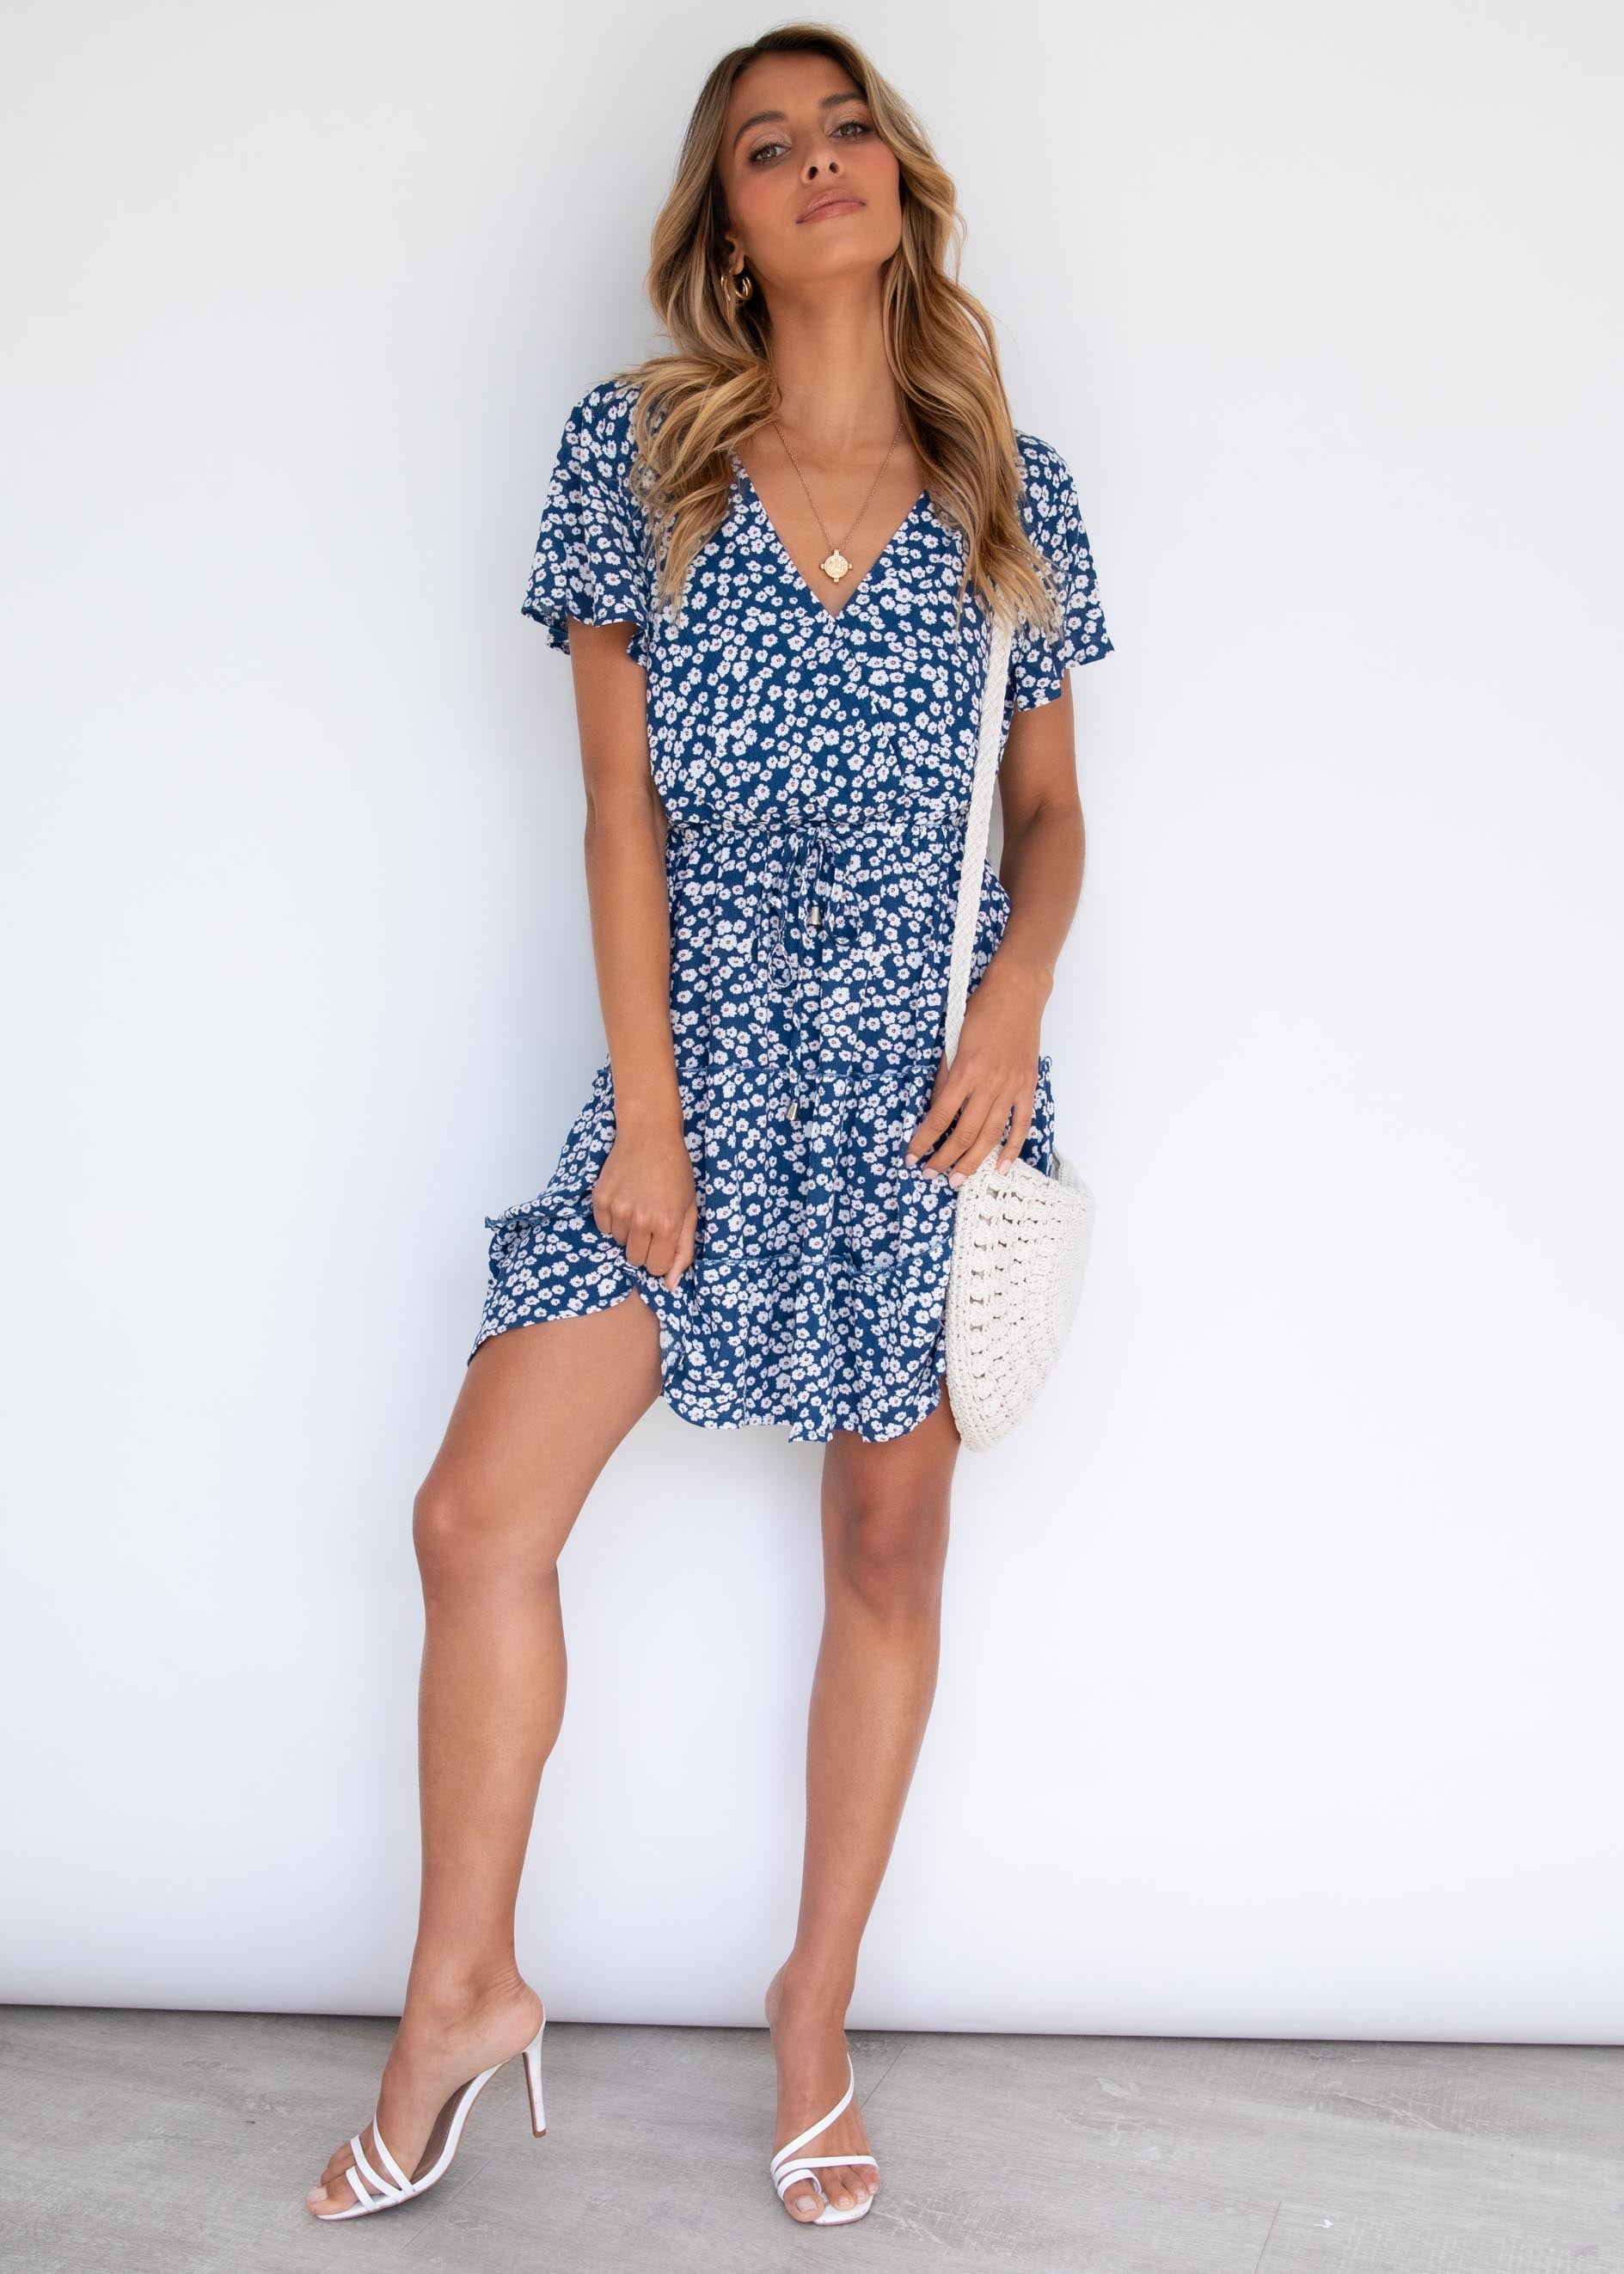 Crossed Signals Dress - Navy Floral